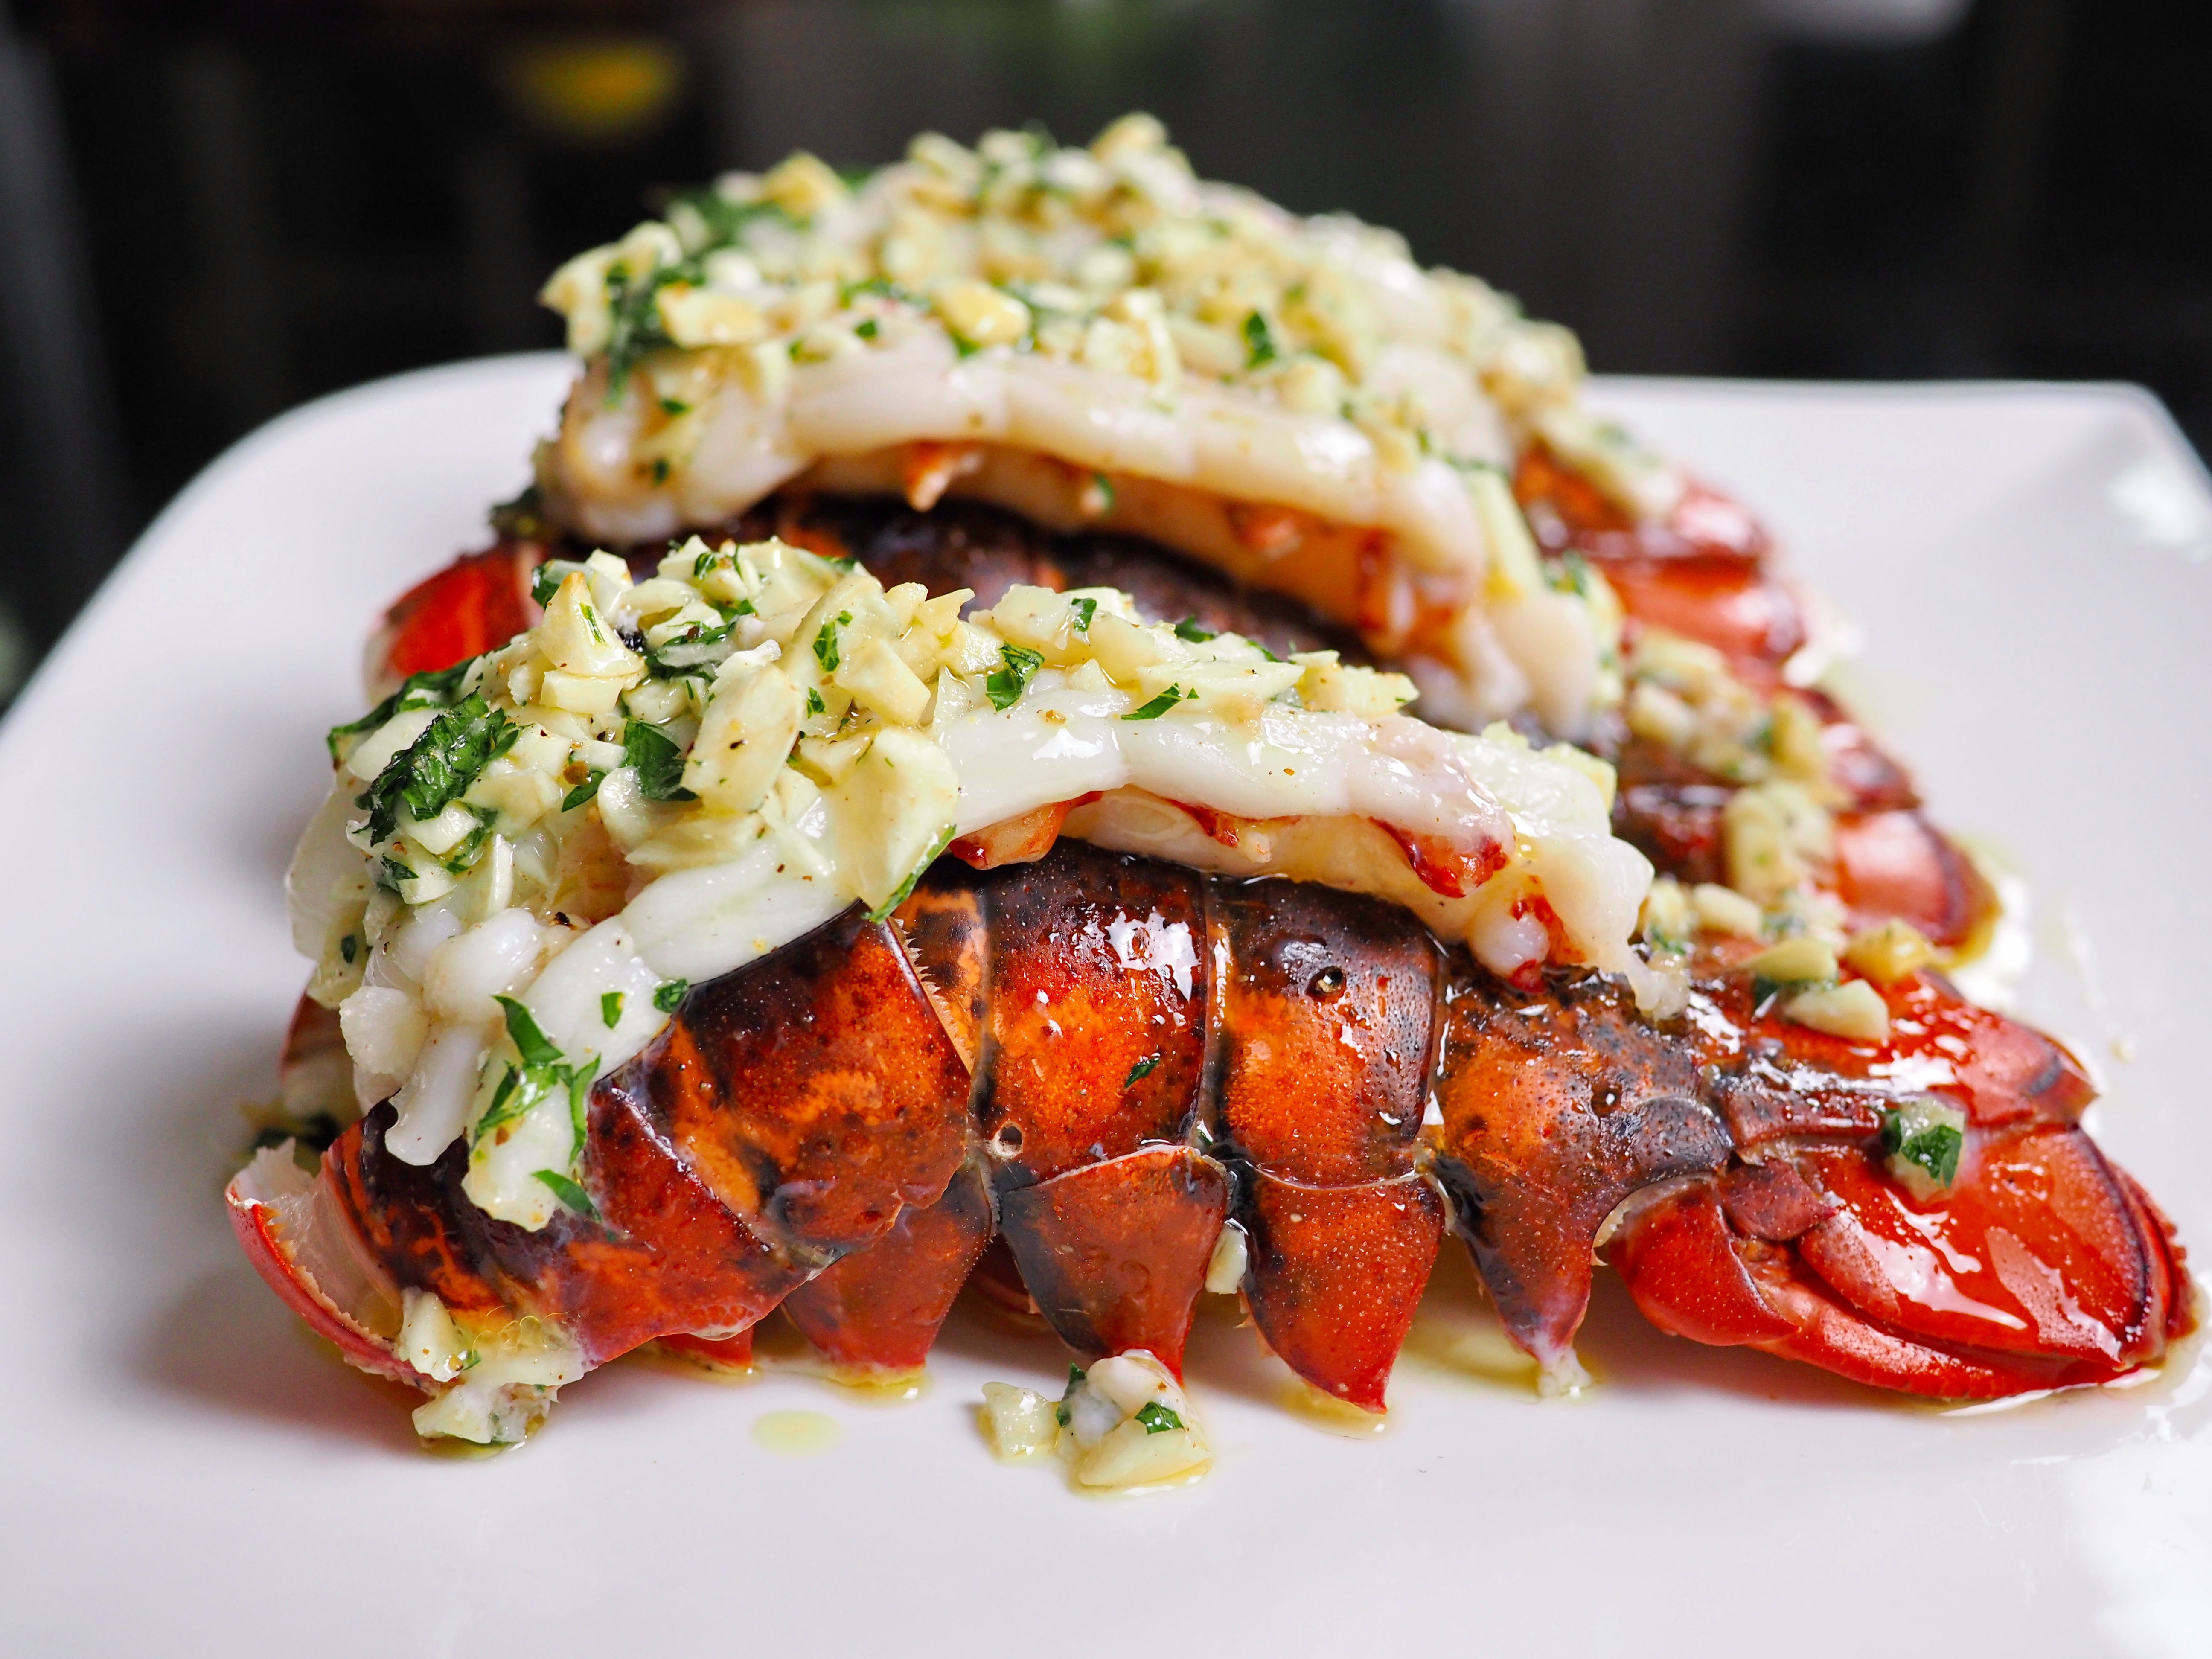 LobsterTailsDelivered.com